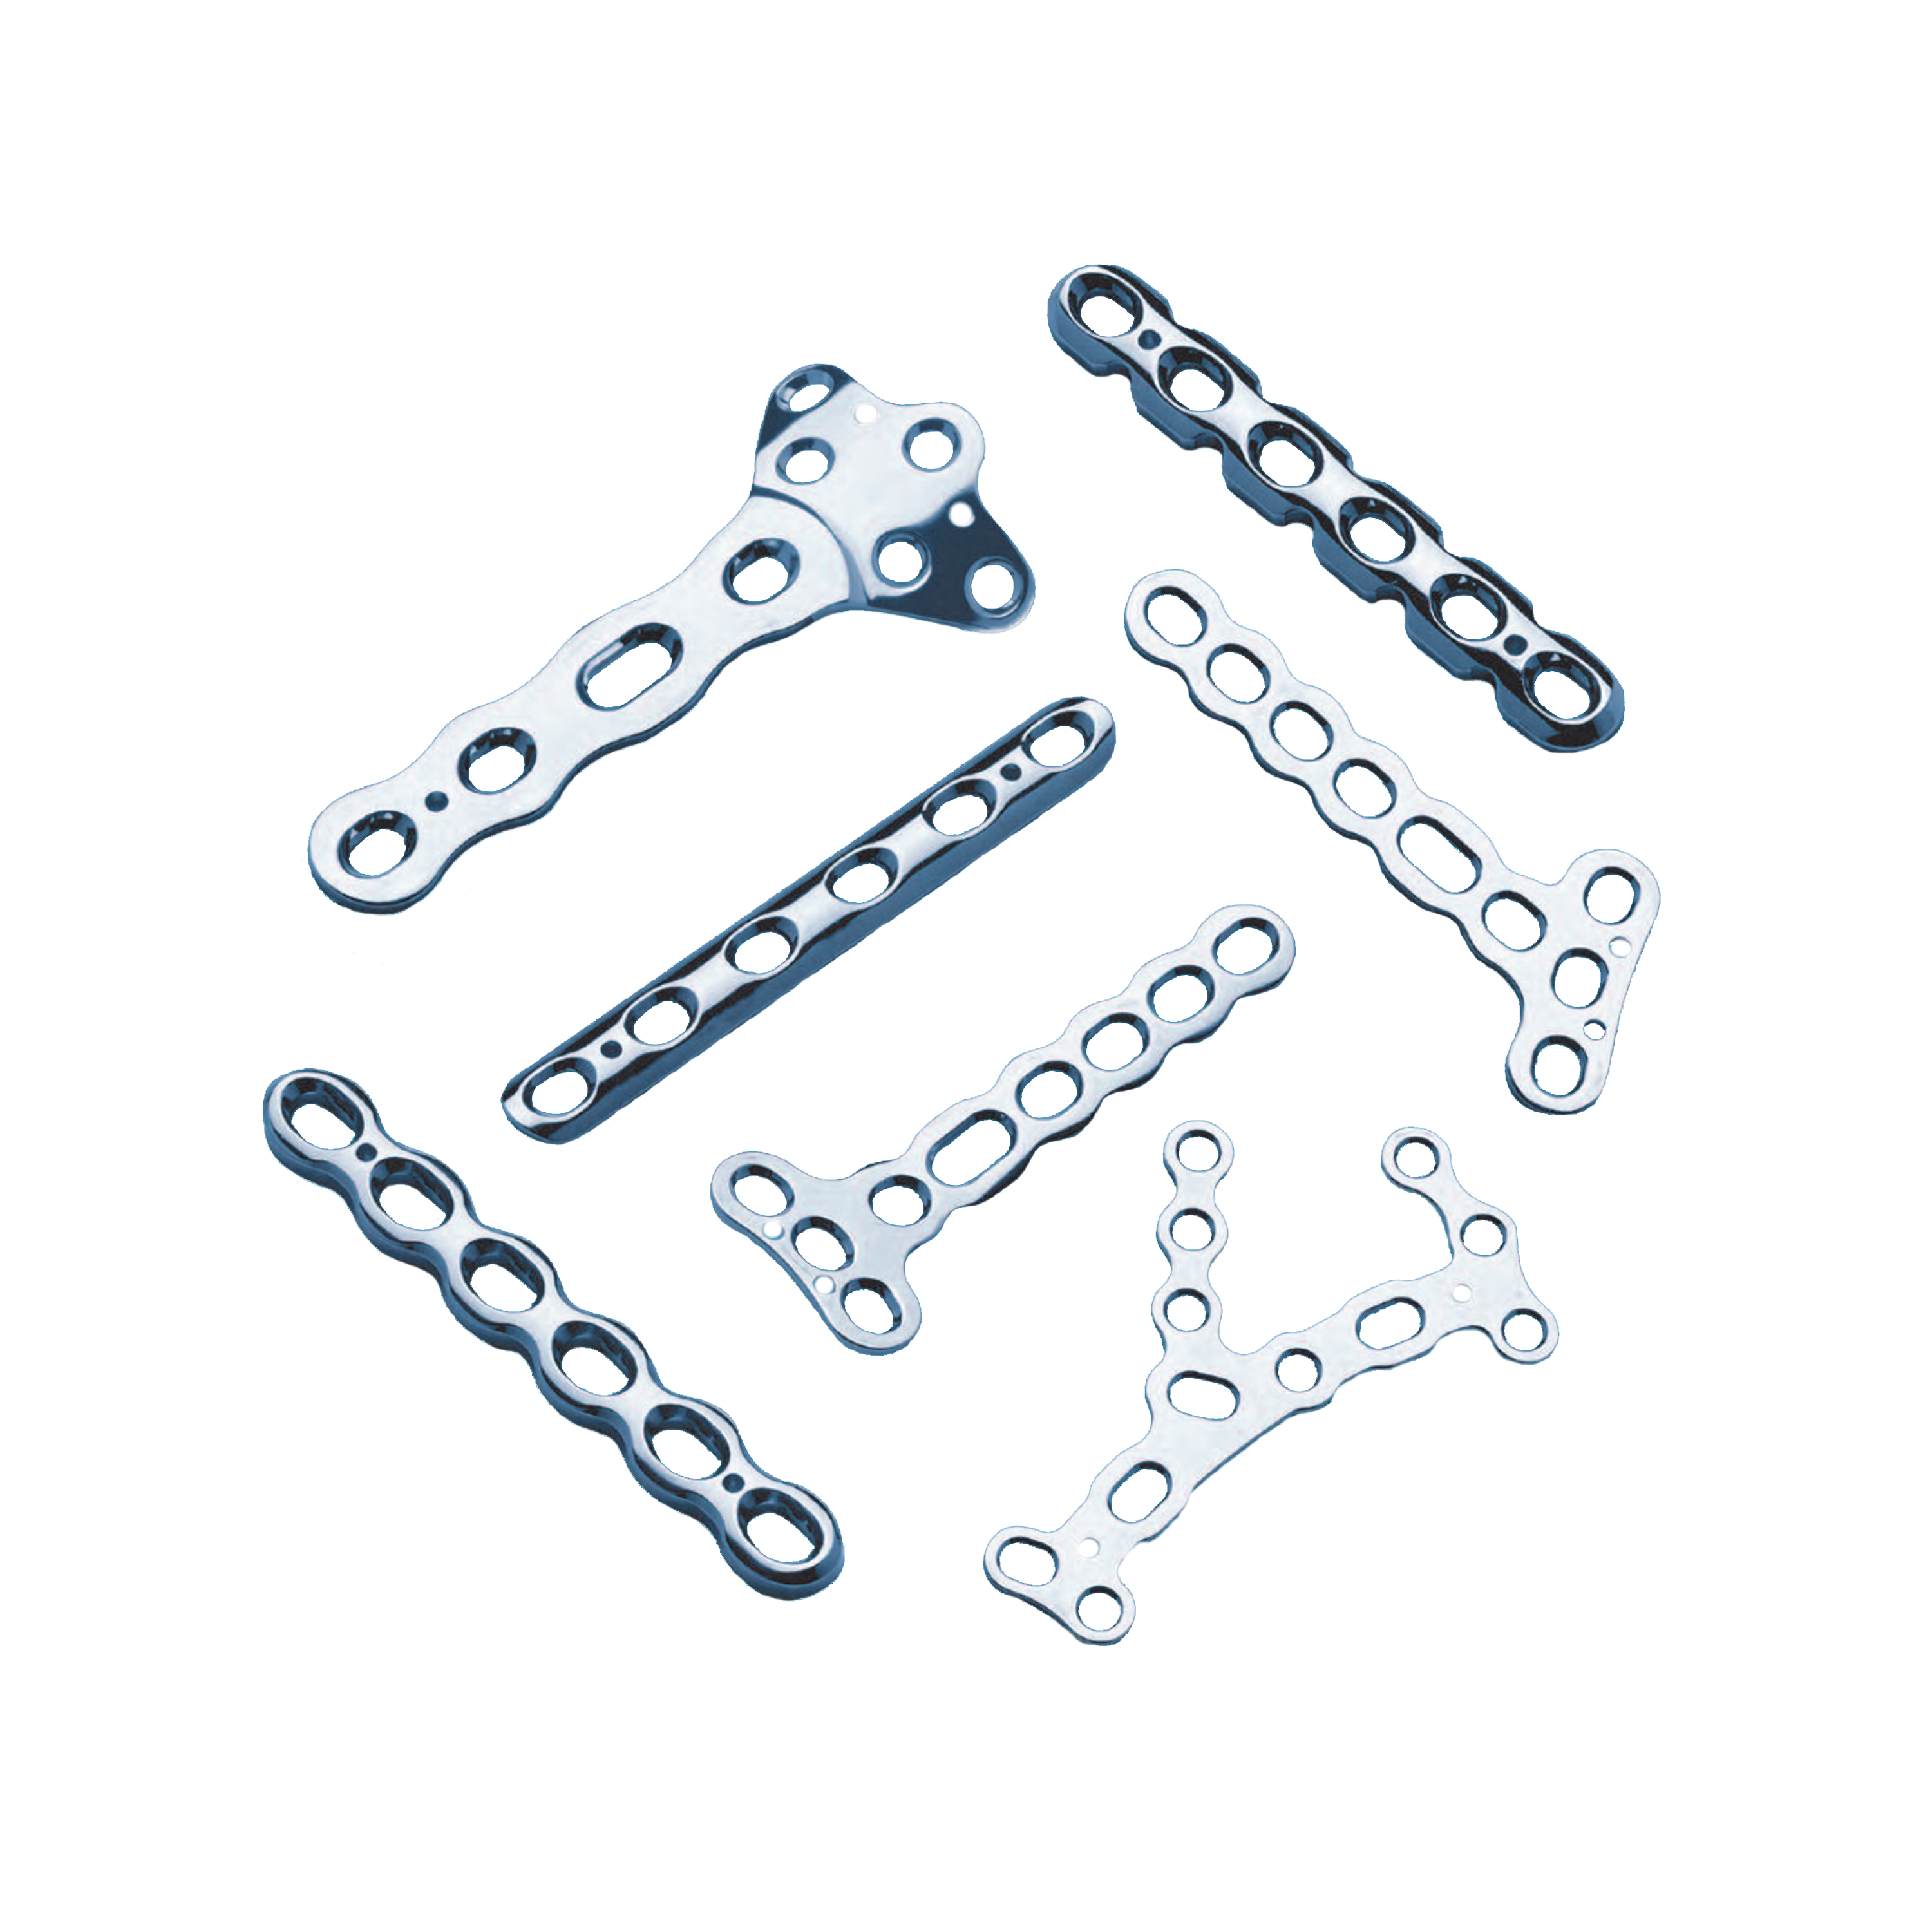 SPS Small Fragment (Stainless Steel & Titanium) | The newly developed Small Fragment Set is designed for the most common